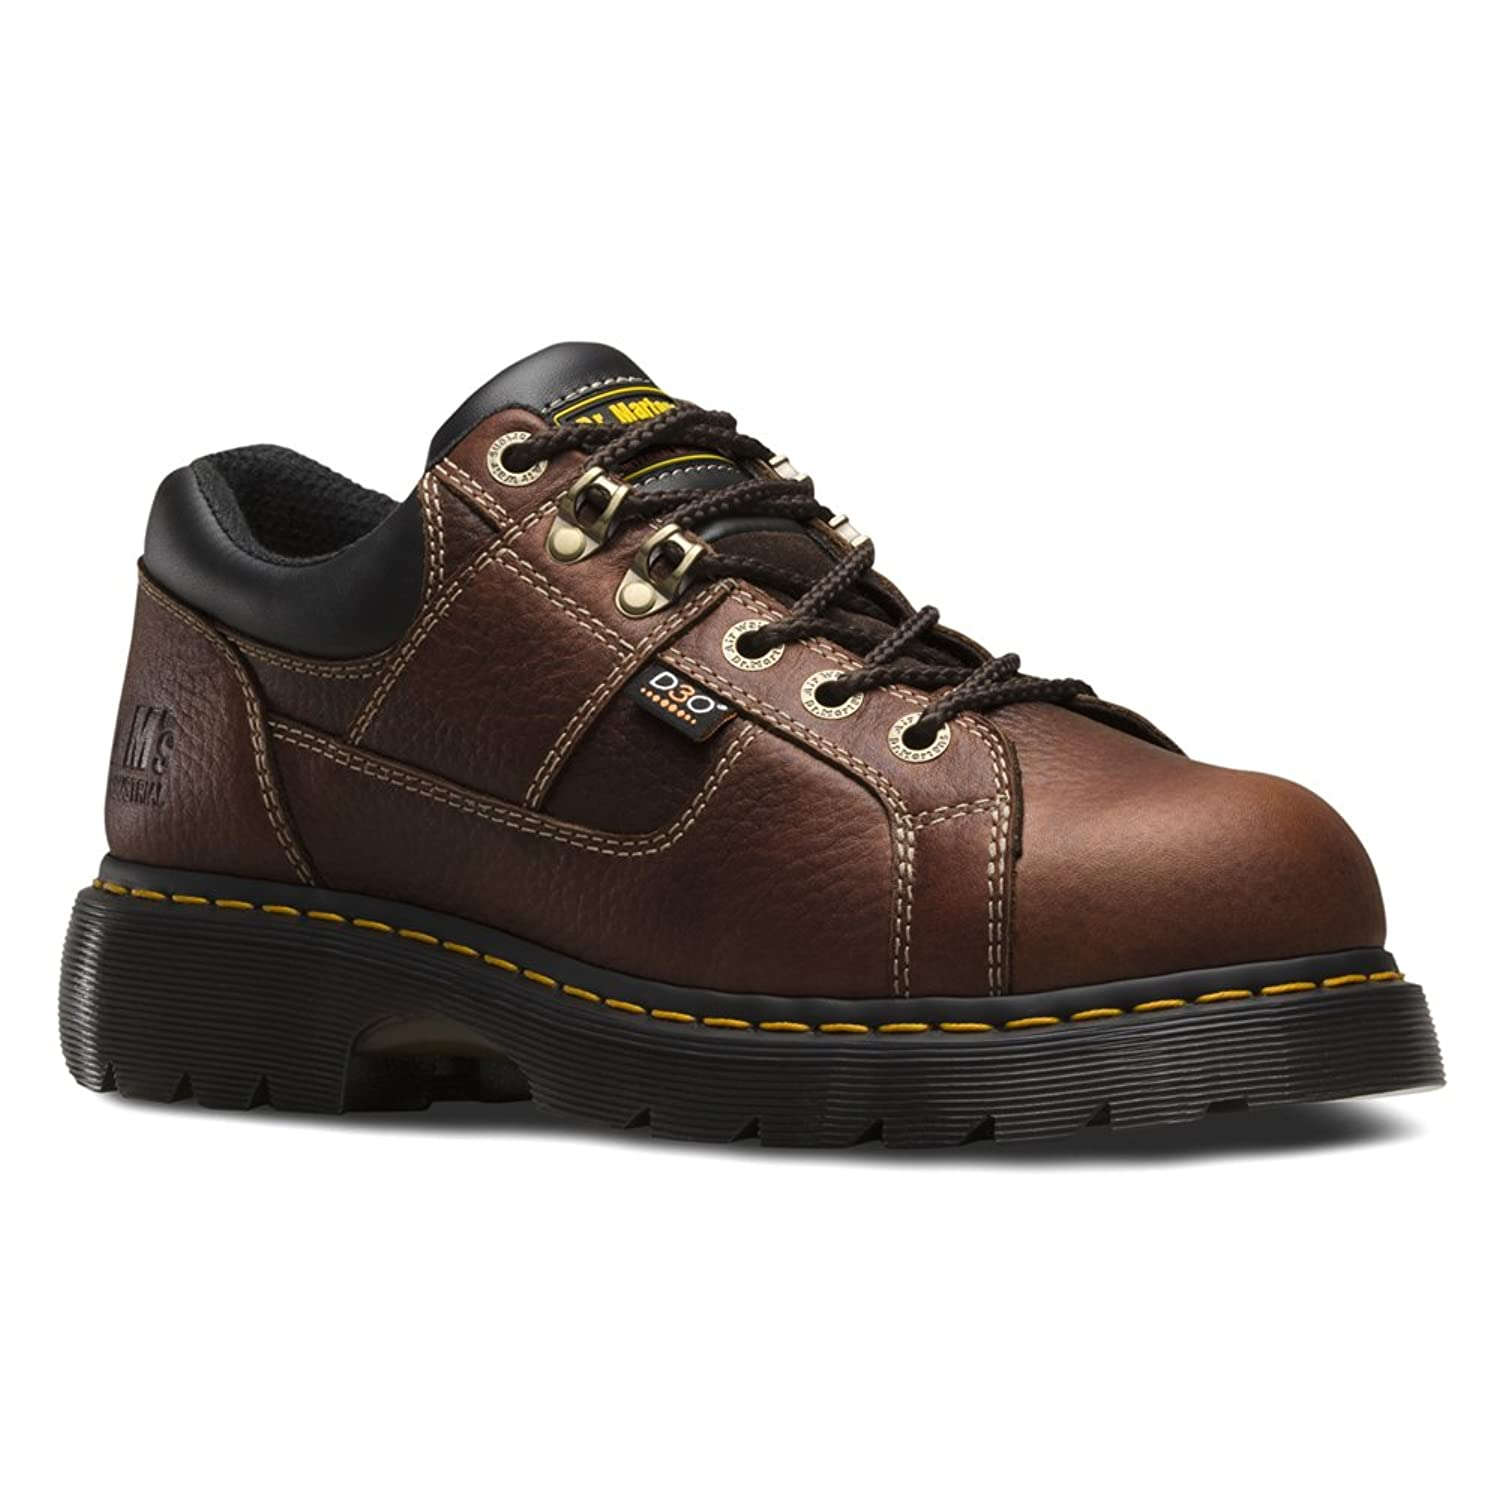 Dr. Martens Men's Gunby Steel Toe Leather Work Boots